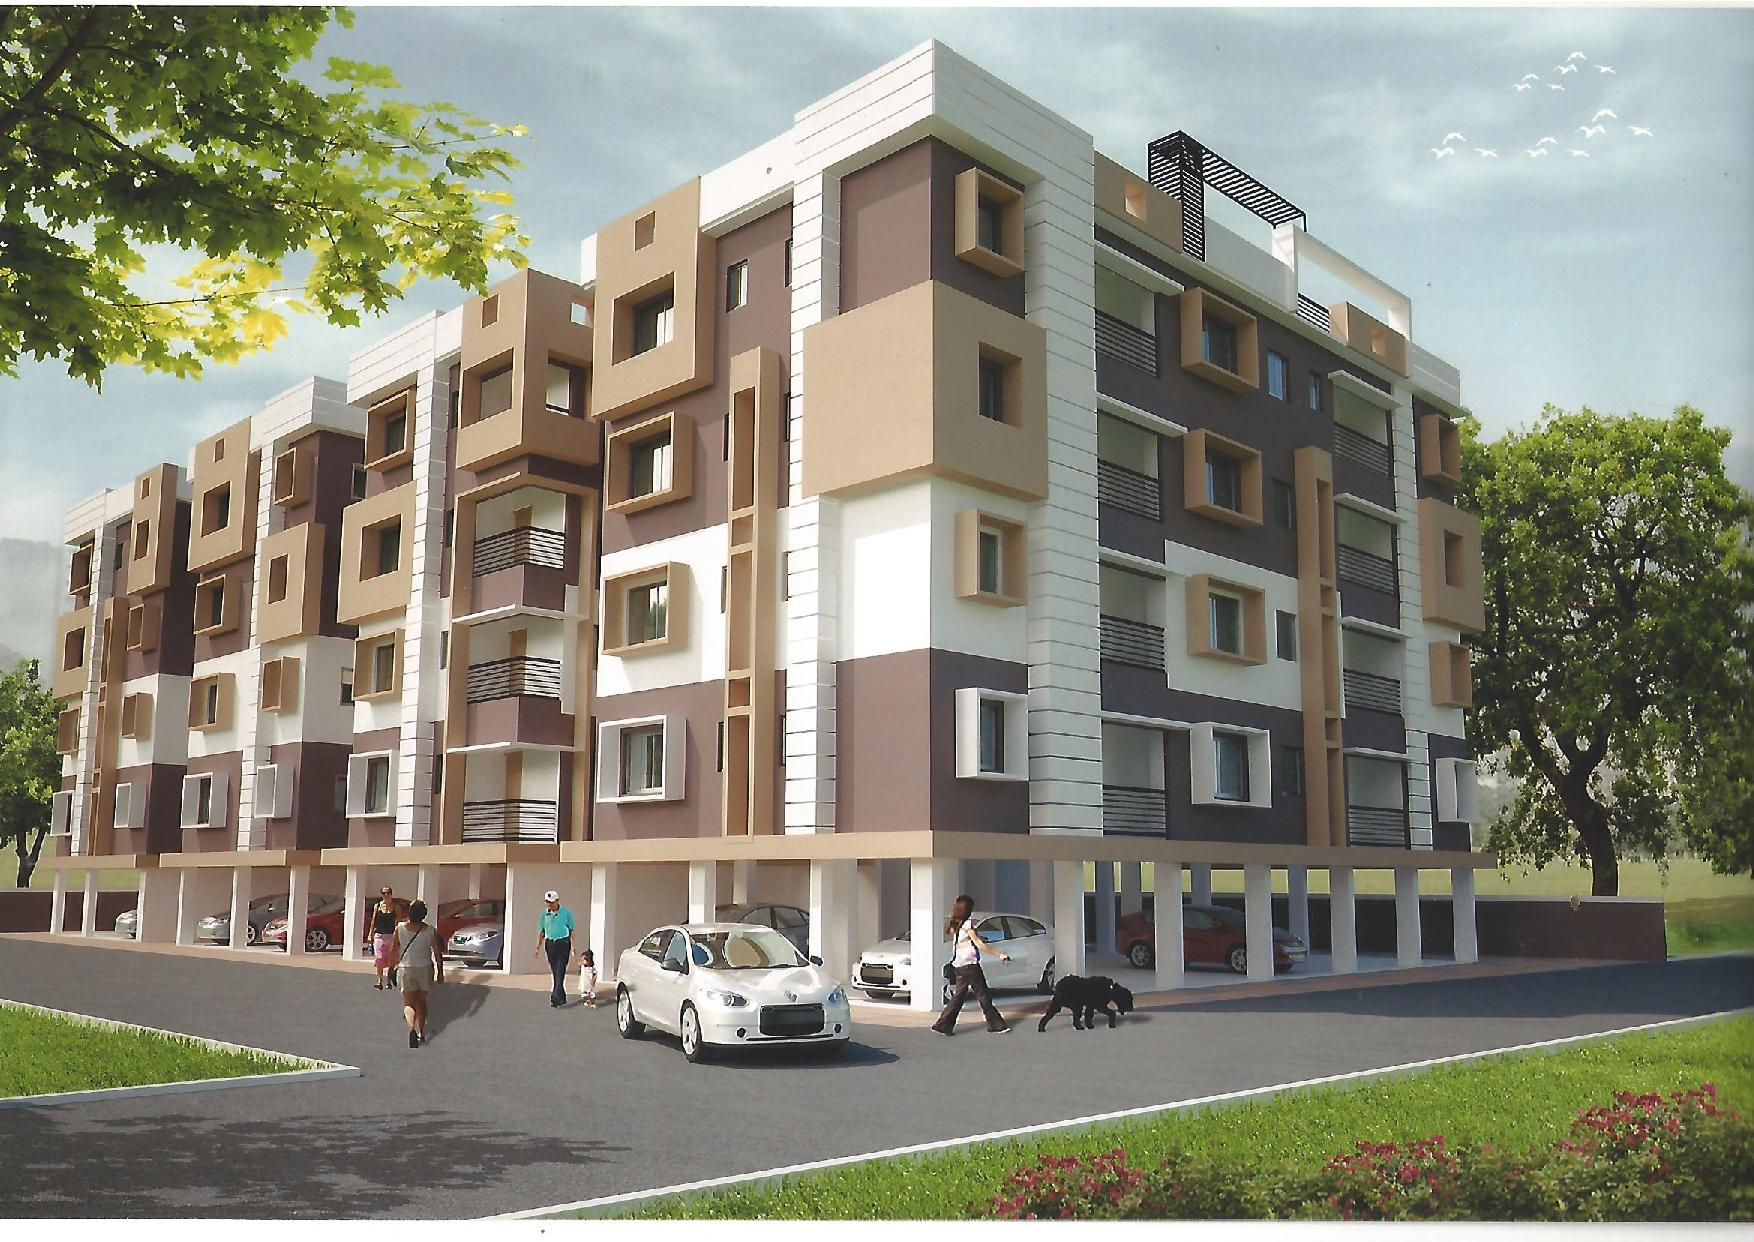 982 Sqft 2 BHK Residential Apartment Available At Siliguri